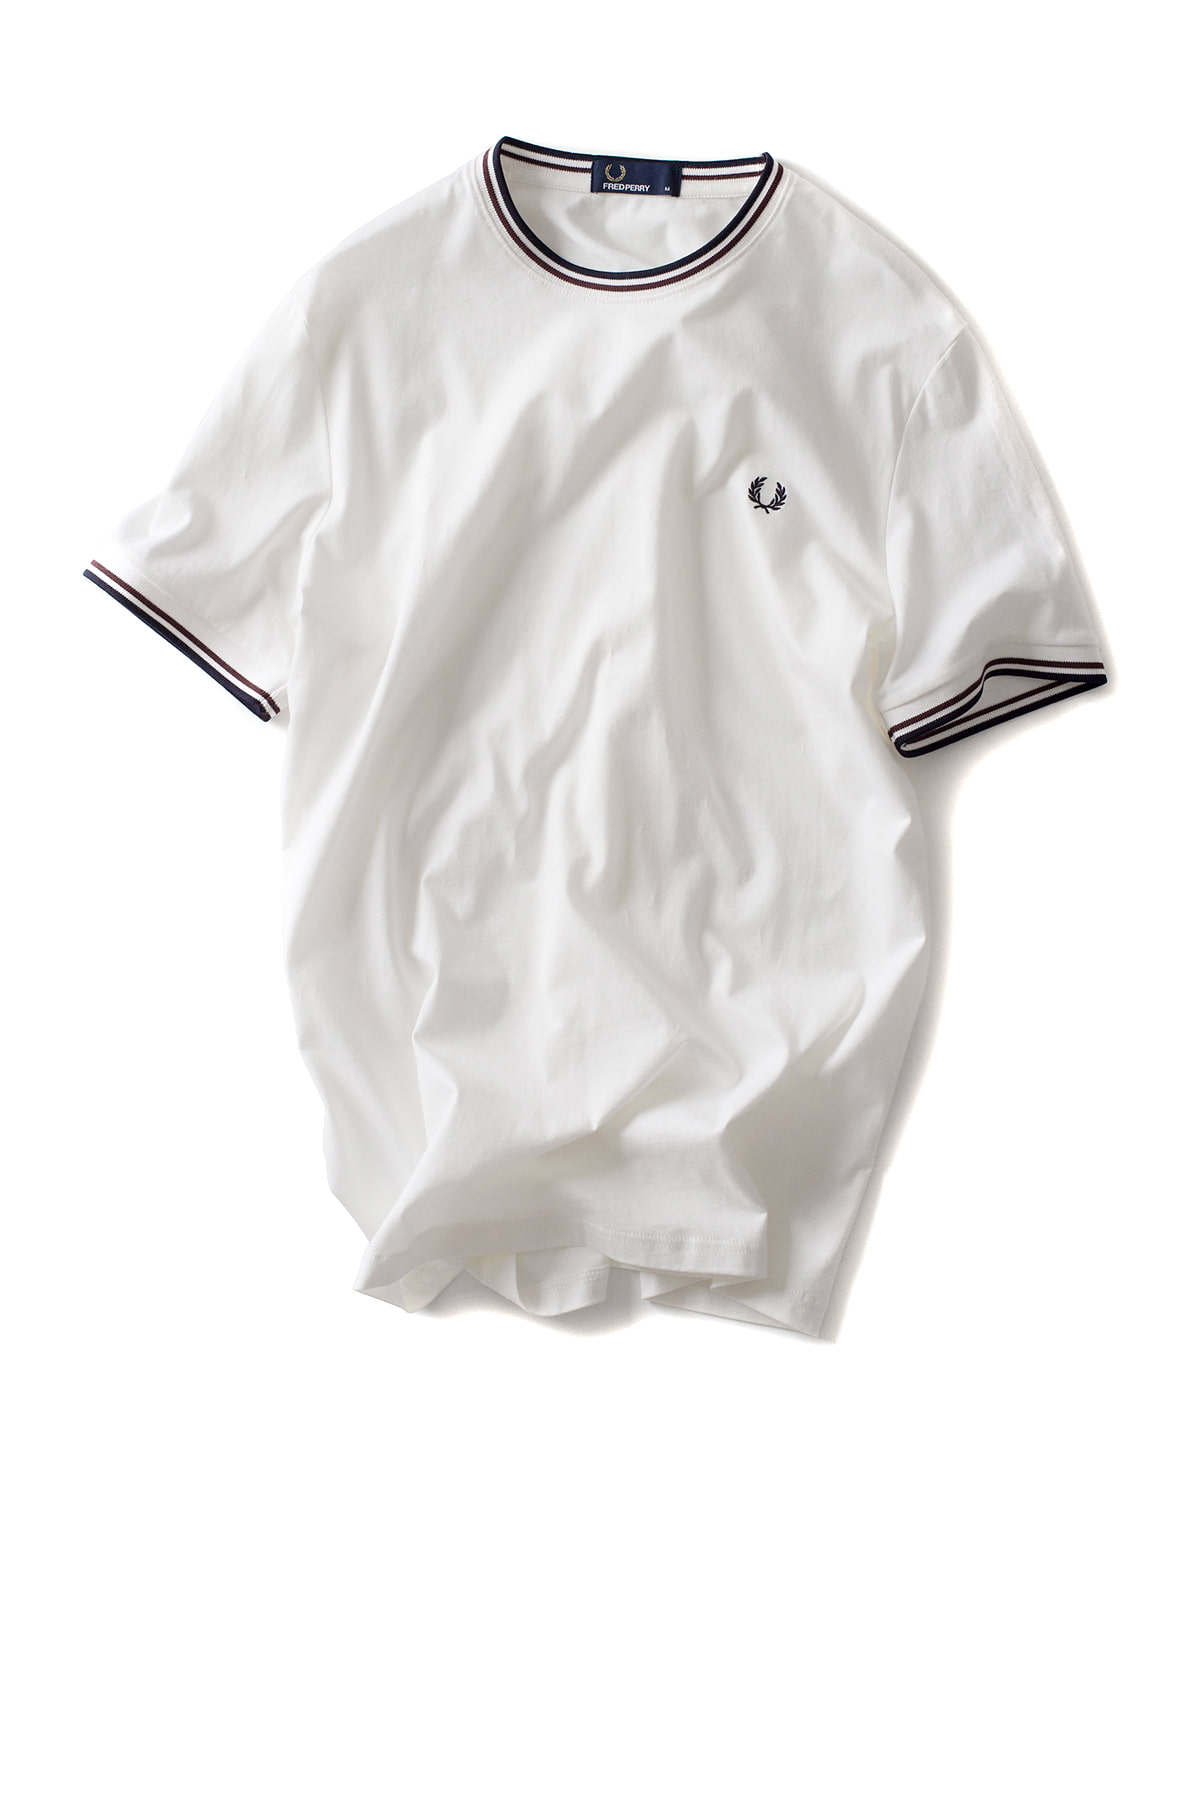 FRED PERRY : Twin Tipped T-Shirt (Snow White)